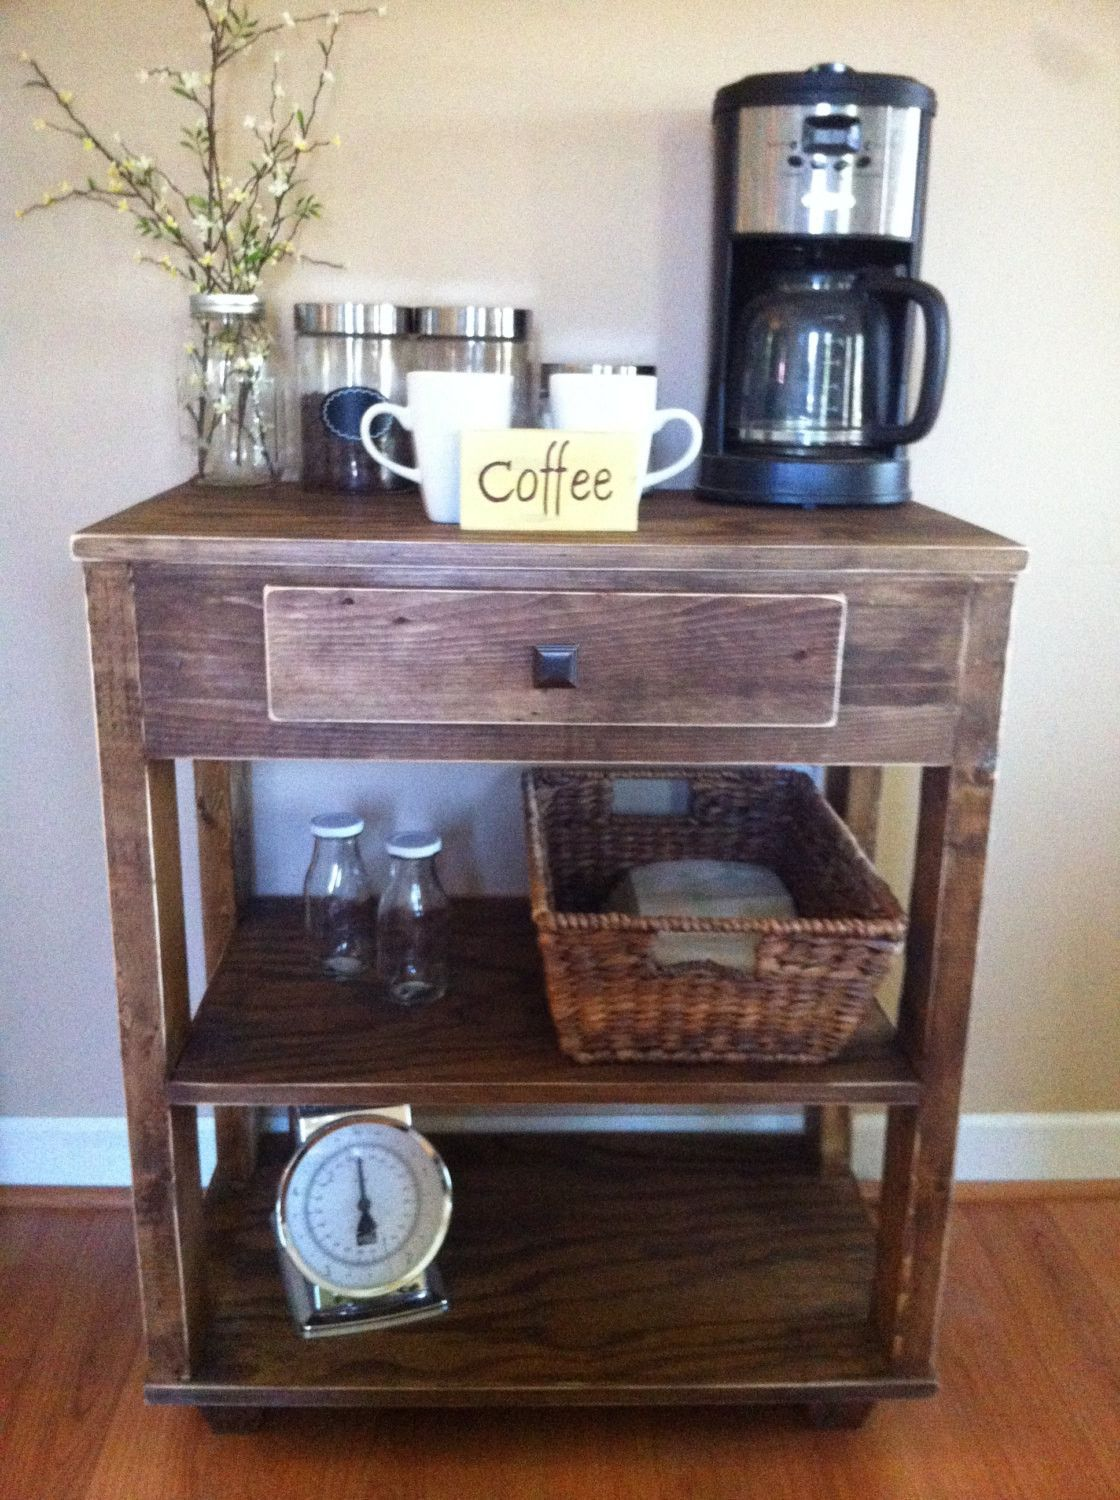 Well-liked Coffee Bar Furniture Home. Coffee Bar Furniture Home - Effte.co DZ34